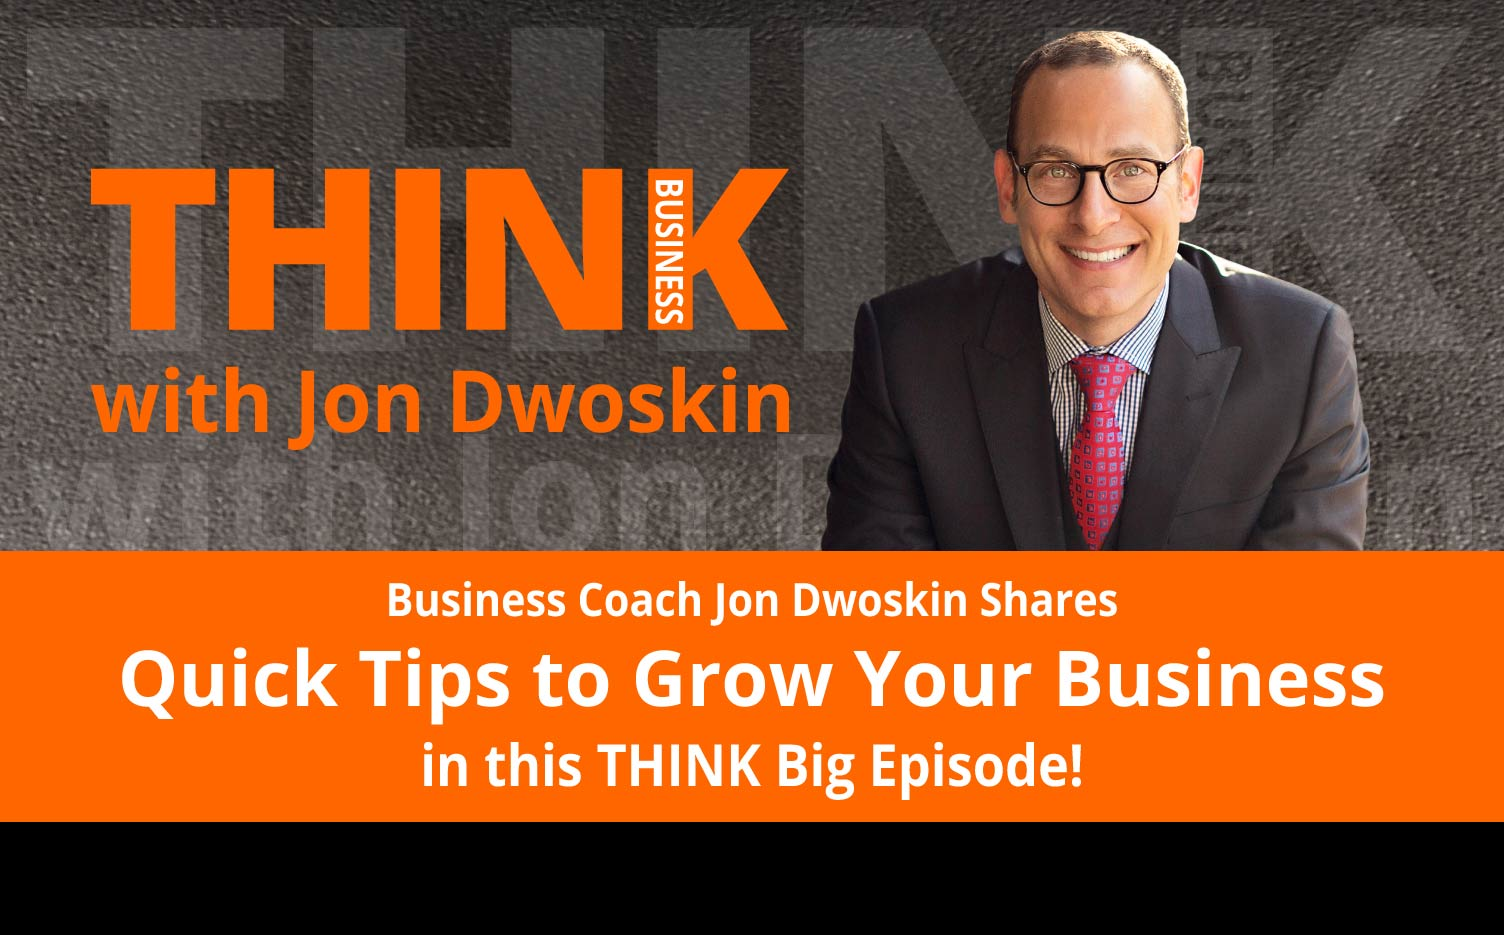 THINK Business Podcast: Today's Quick Tip: Ask for Help